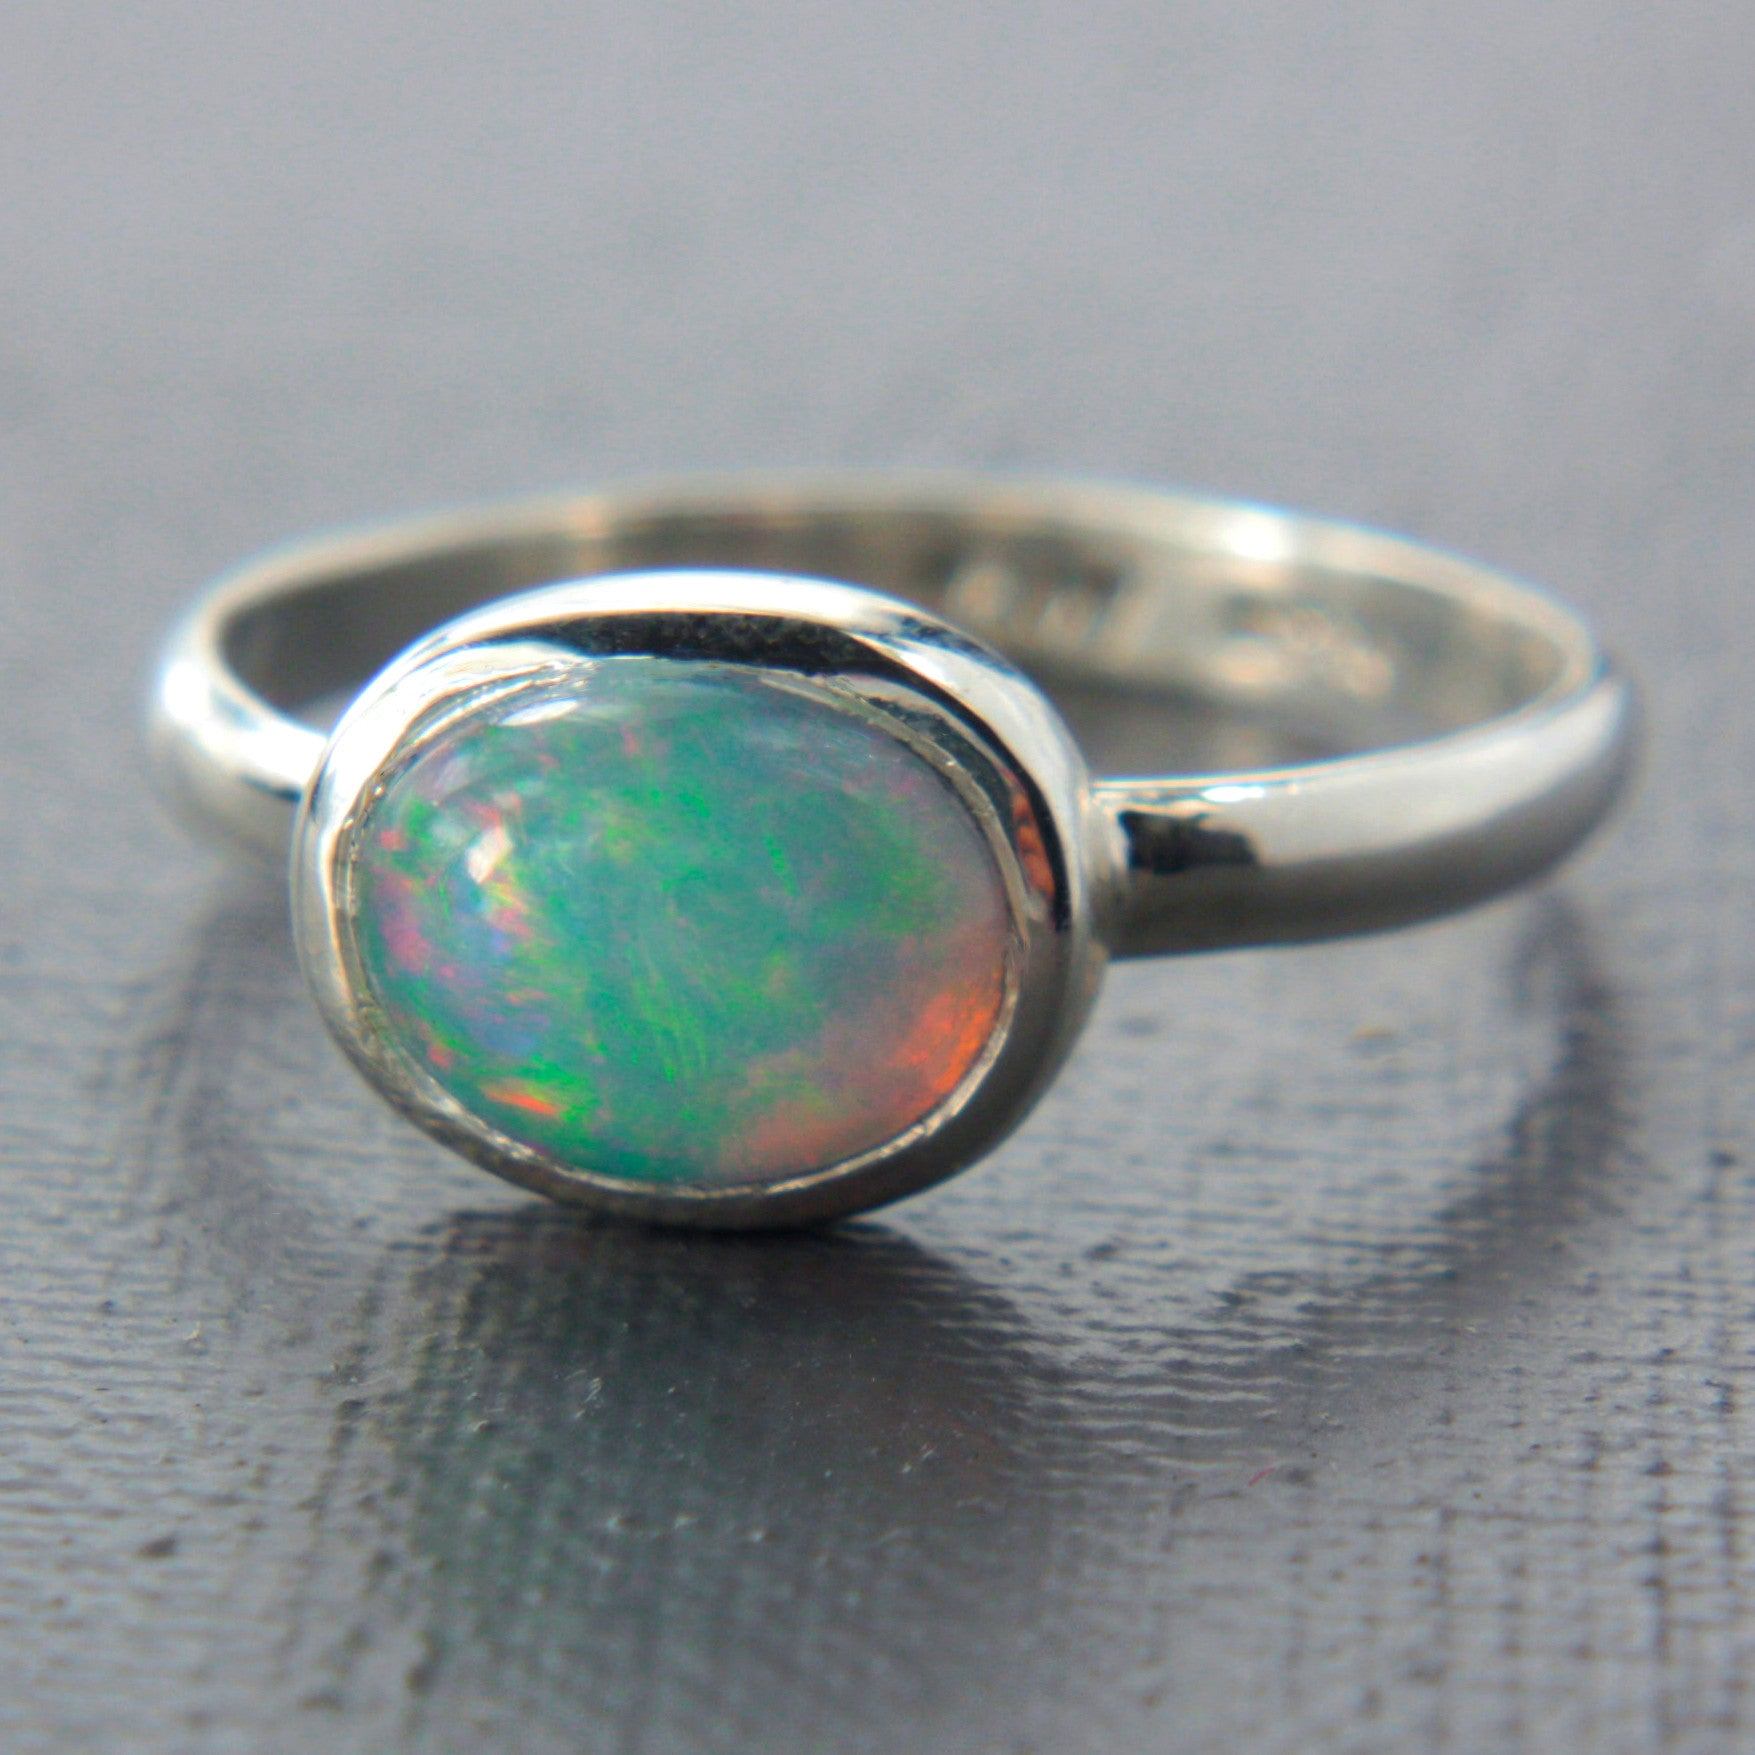 Natural Opal Ring Sterling Silver - Manari Design